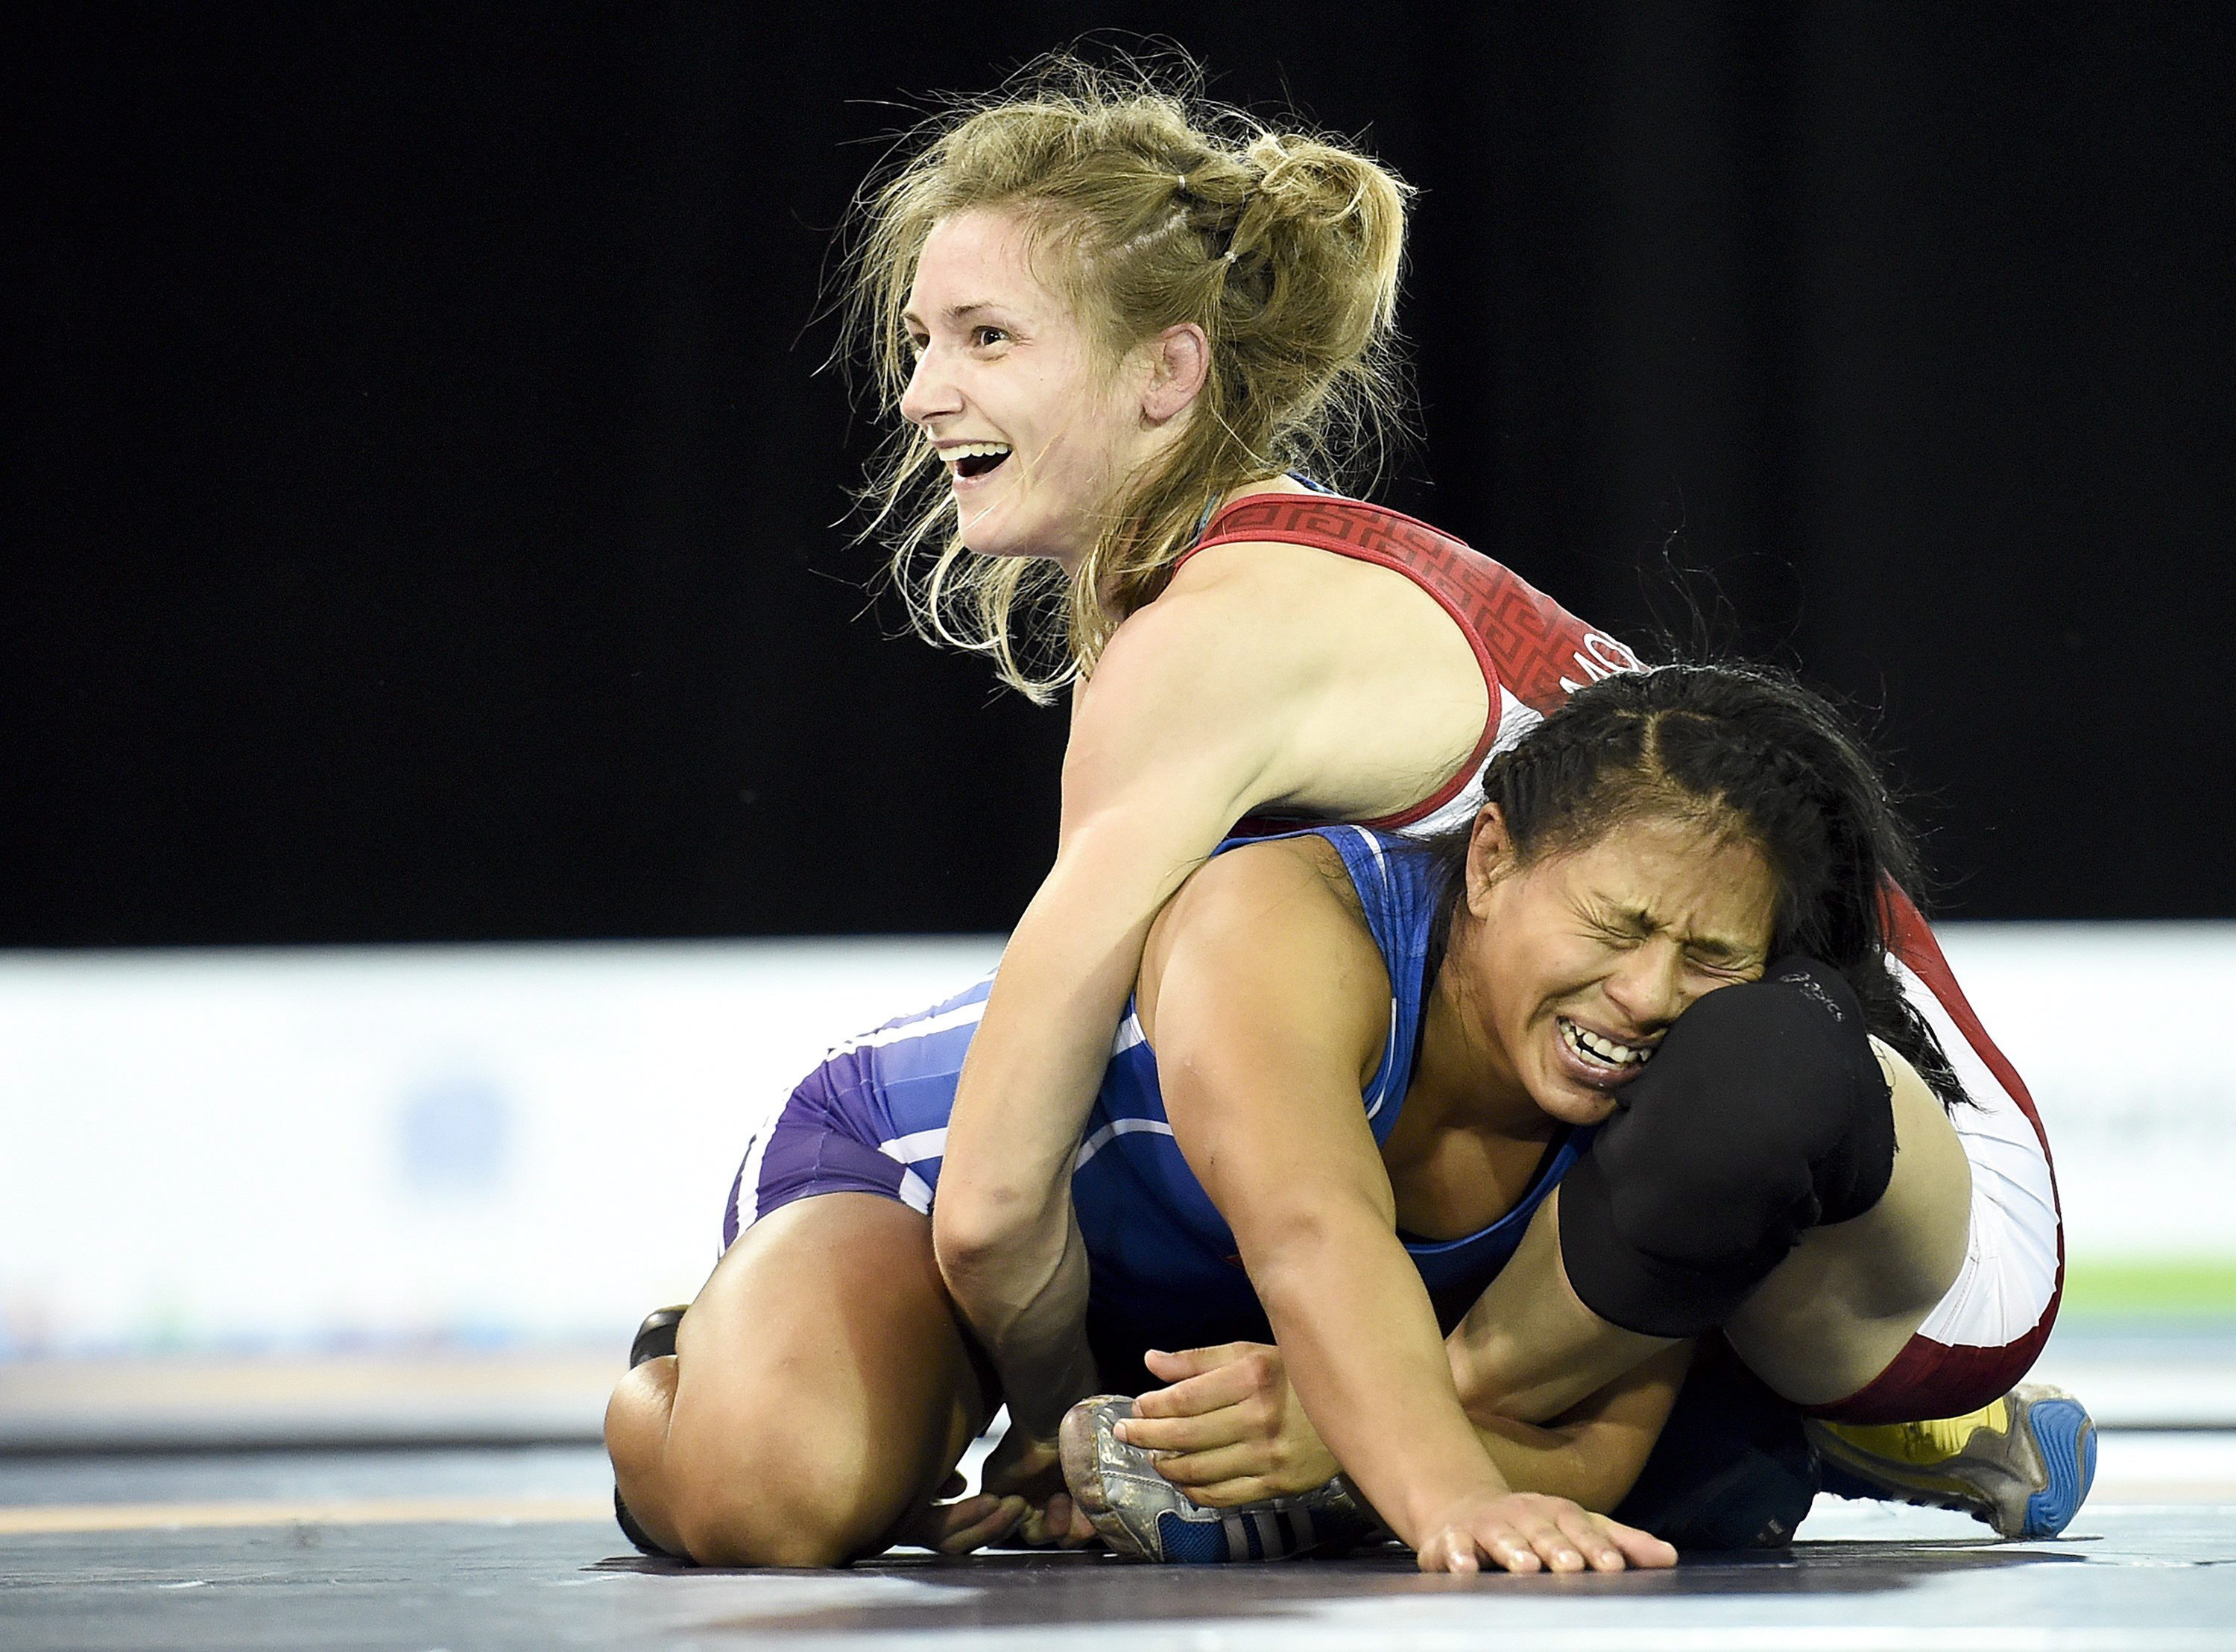 Gene Morrison, top, of Canada moments before time runs out to defeat Thalia Mallqui of Peru in the women's freestyle 48kg final during the Pan American Games in Toronto on Thursday, July 16, 2015. Morrison won gold. THE CANADIAN PRESS/Nathan Denette